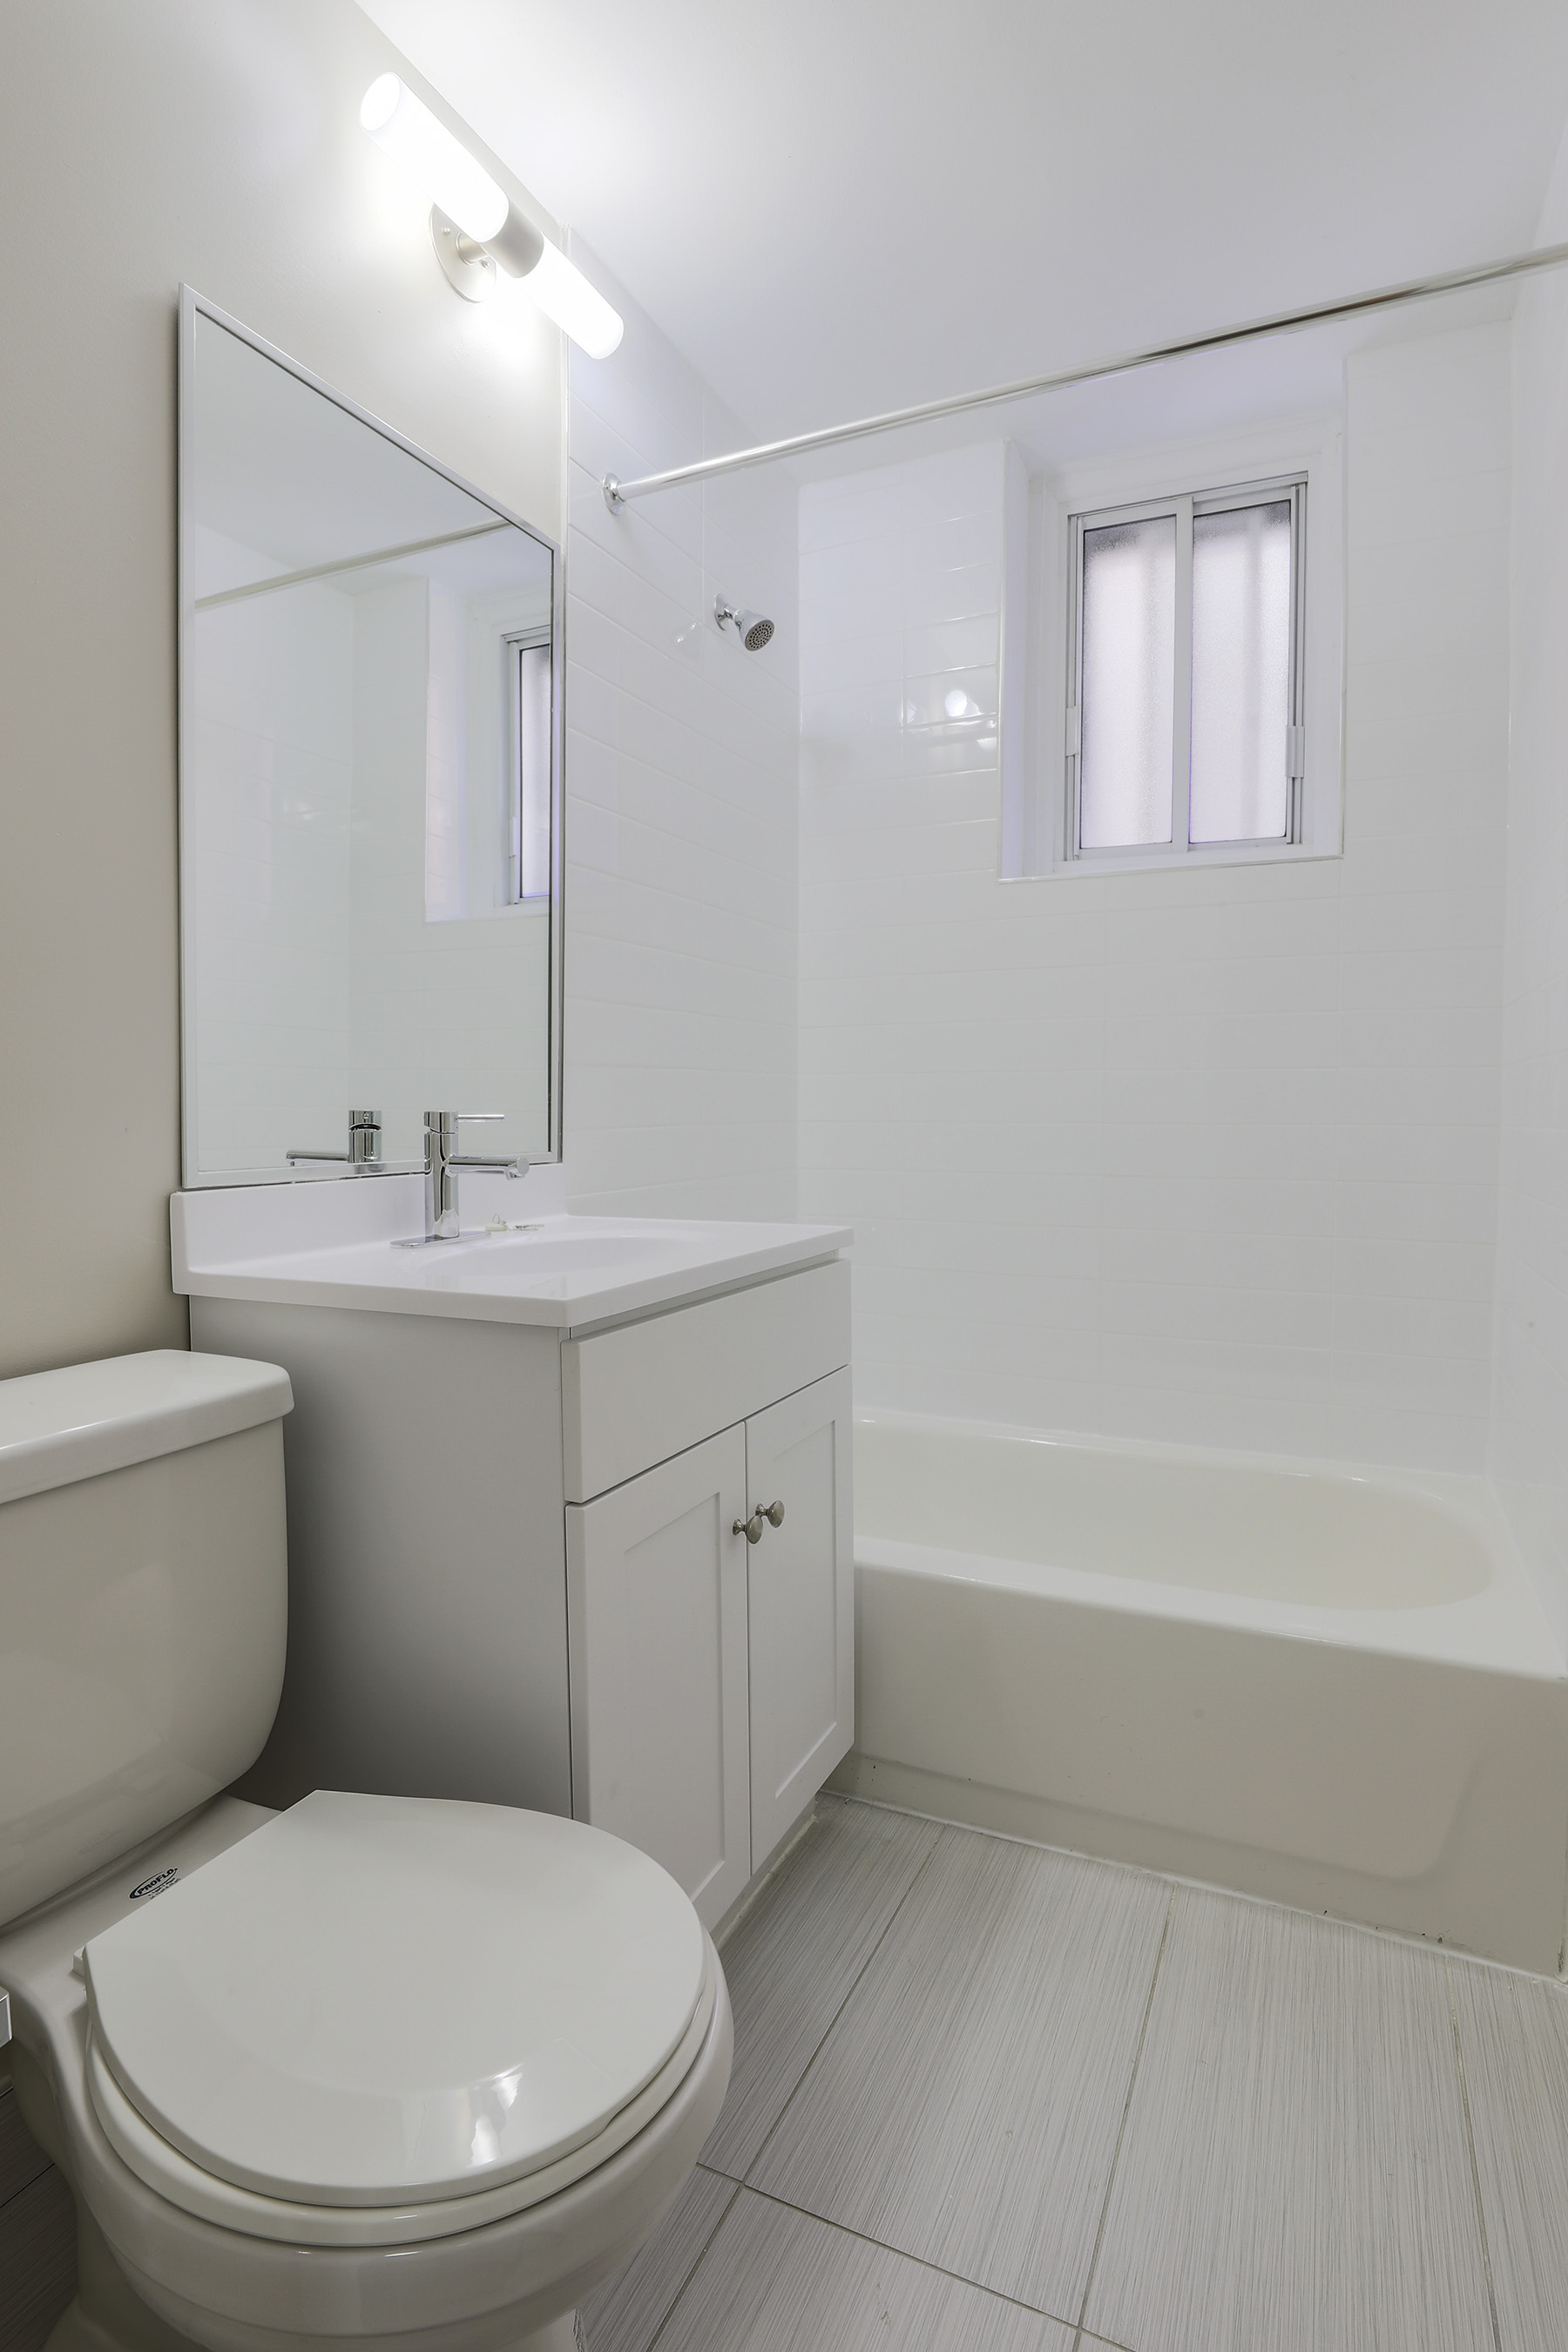 3 bedroom Apartments for rent in Cote-des-Neiges at 5000 Clanranald - Photo 10 - RentQuebecApartments – L401549